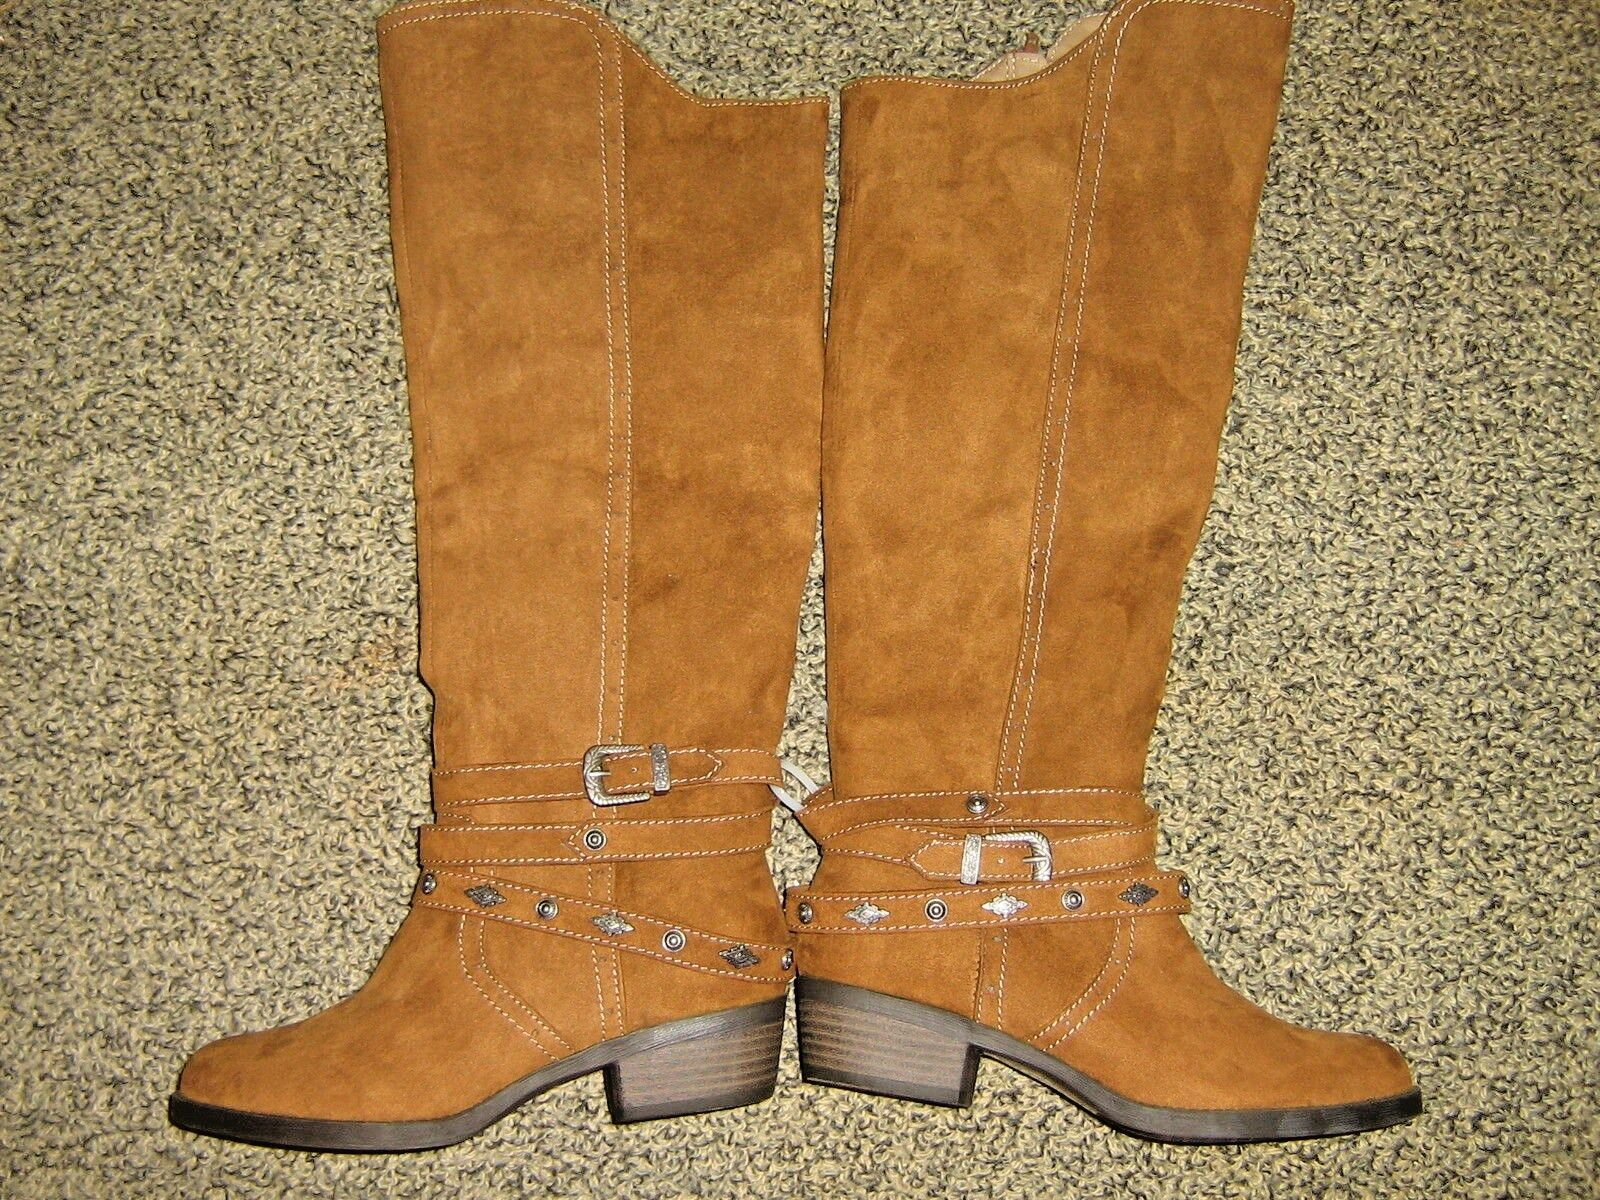 NWTS  MUDD  WOMENS sz 6 BROWN SUEDE fashion western  RIDING BOOTS shoes